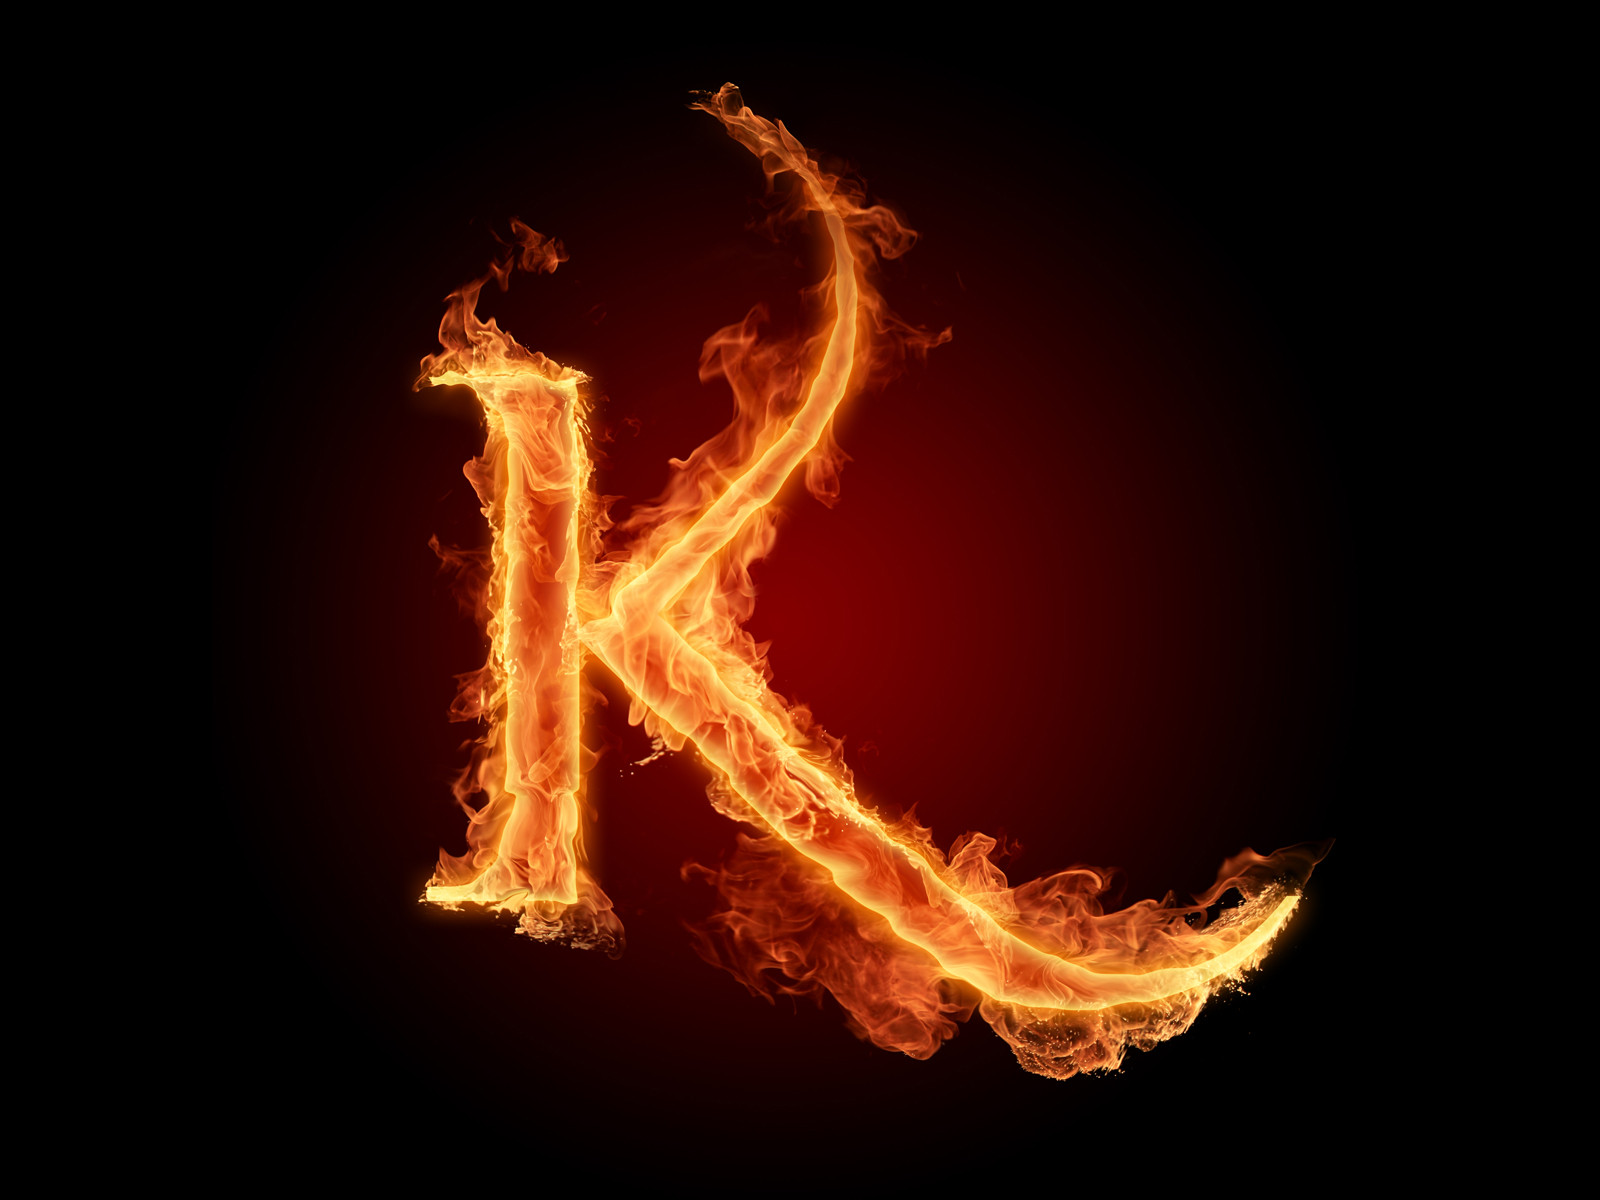 HD Fire Fonts   Fiery Letters and Fiery Numbers 1600x1200 1600x1200